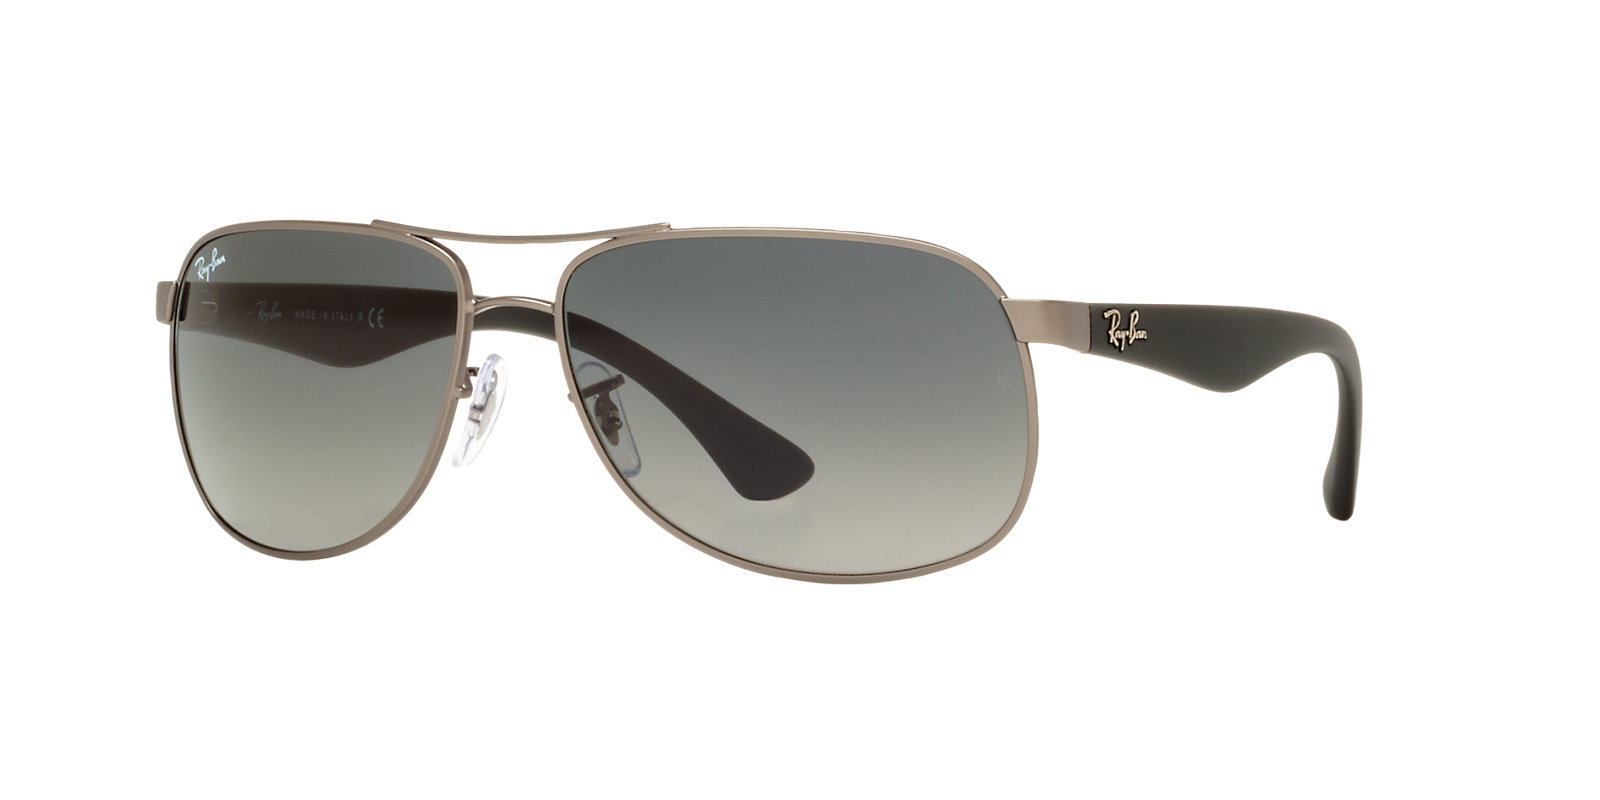 Ray-Ban-Sunglasses-for-Men (16)